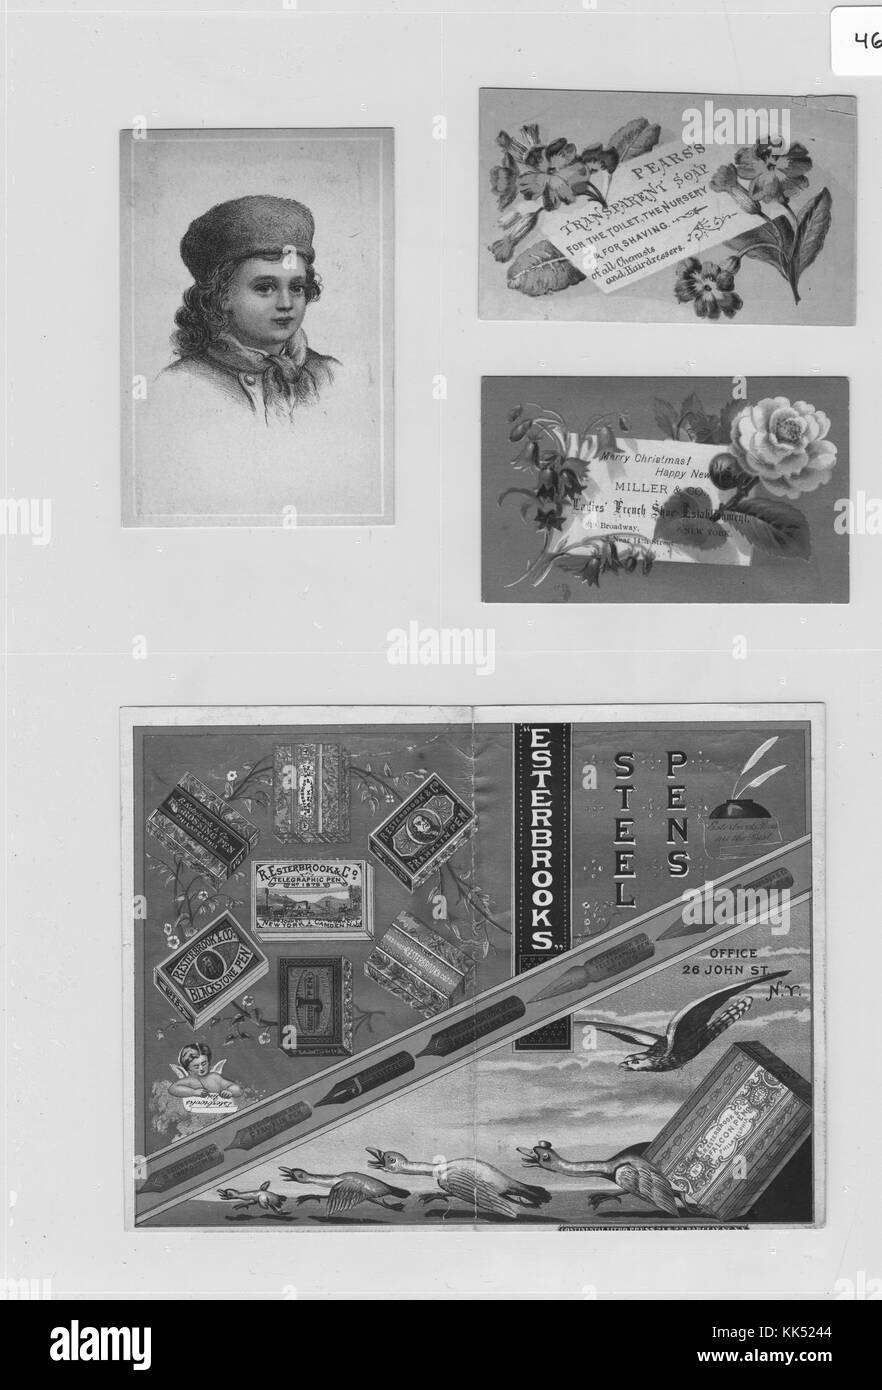 Collection of four advertisement cards, clockwise from left, card with a portrait of a small child wearing a hat - Stock Image